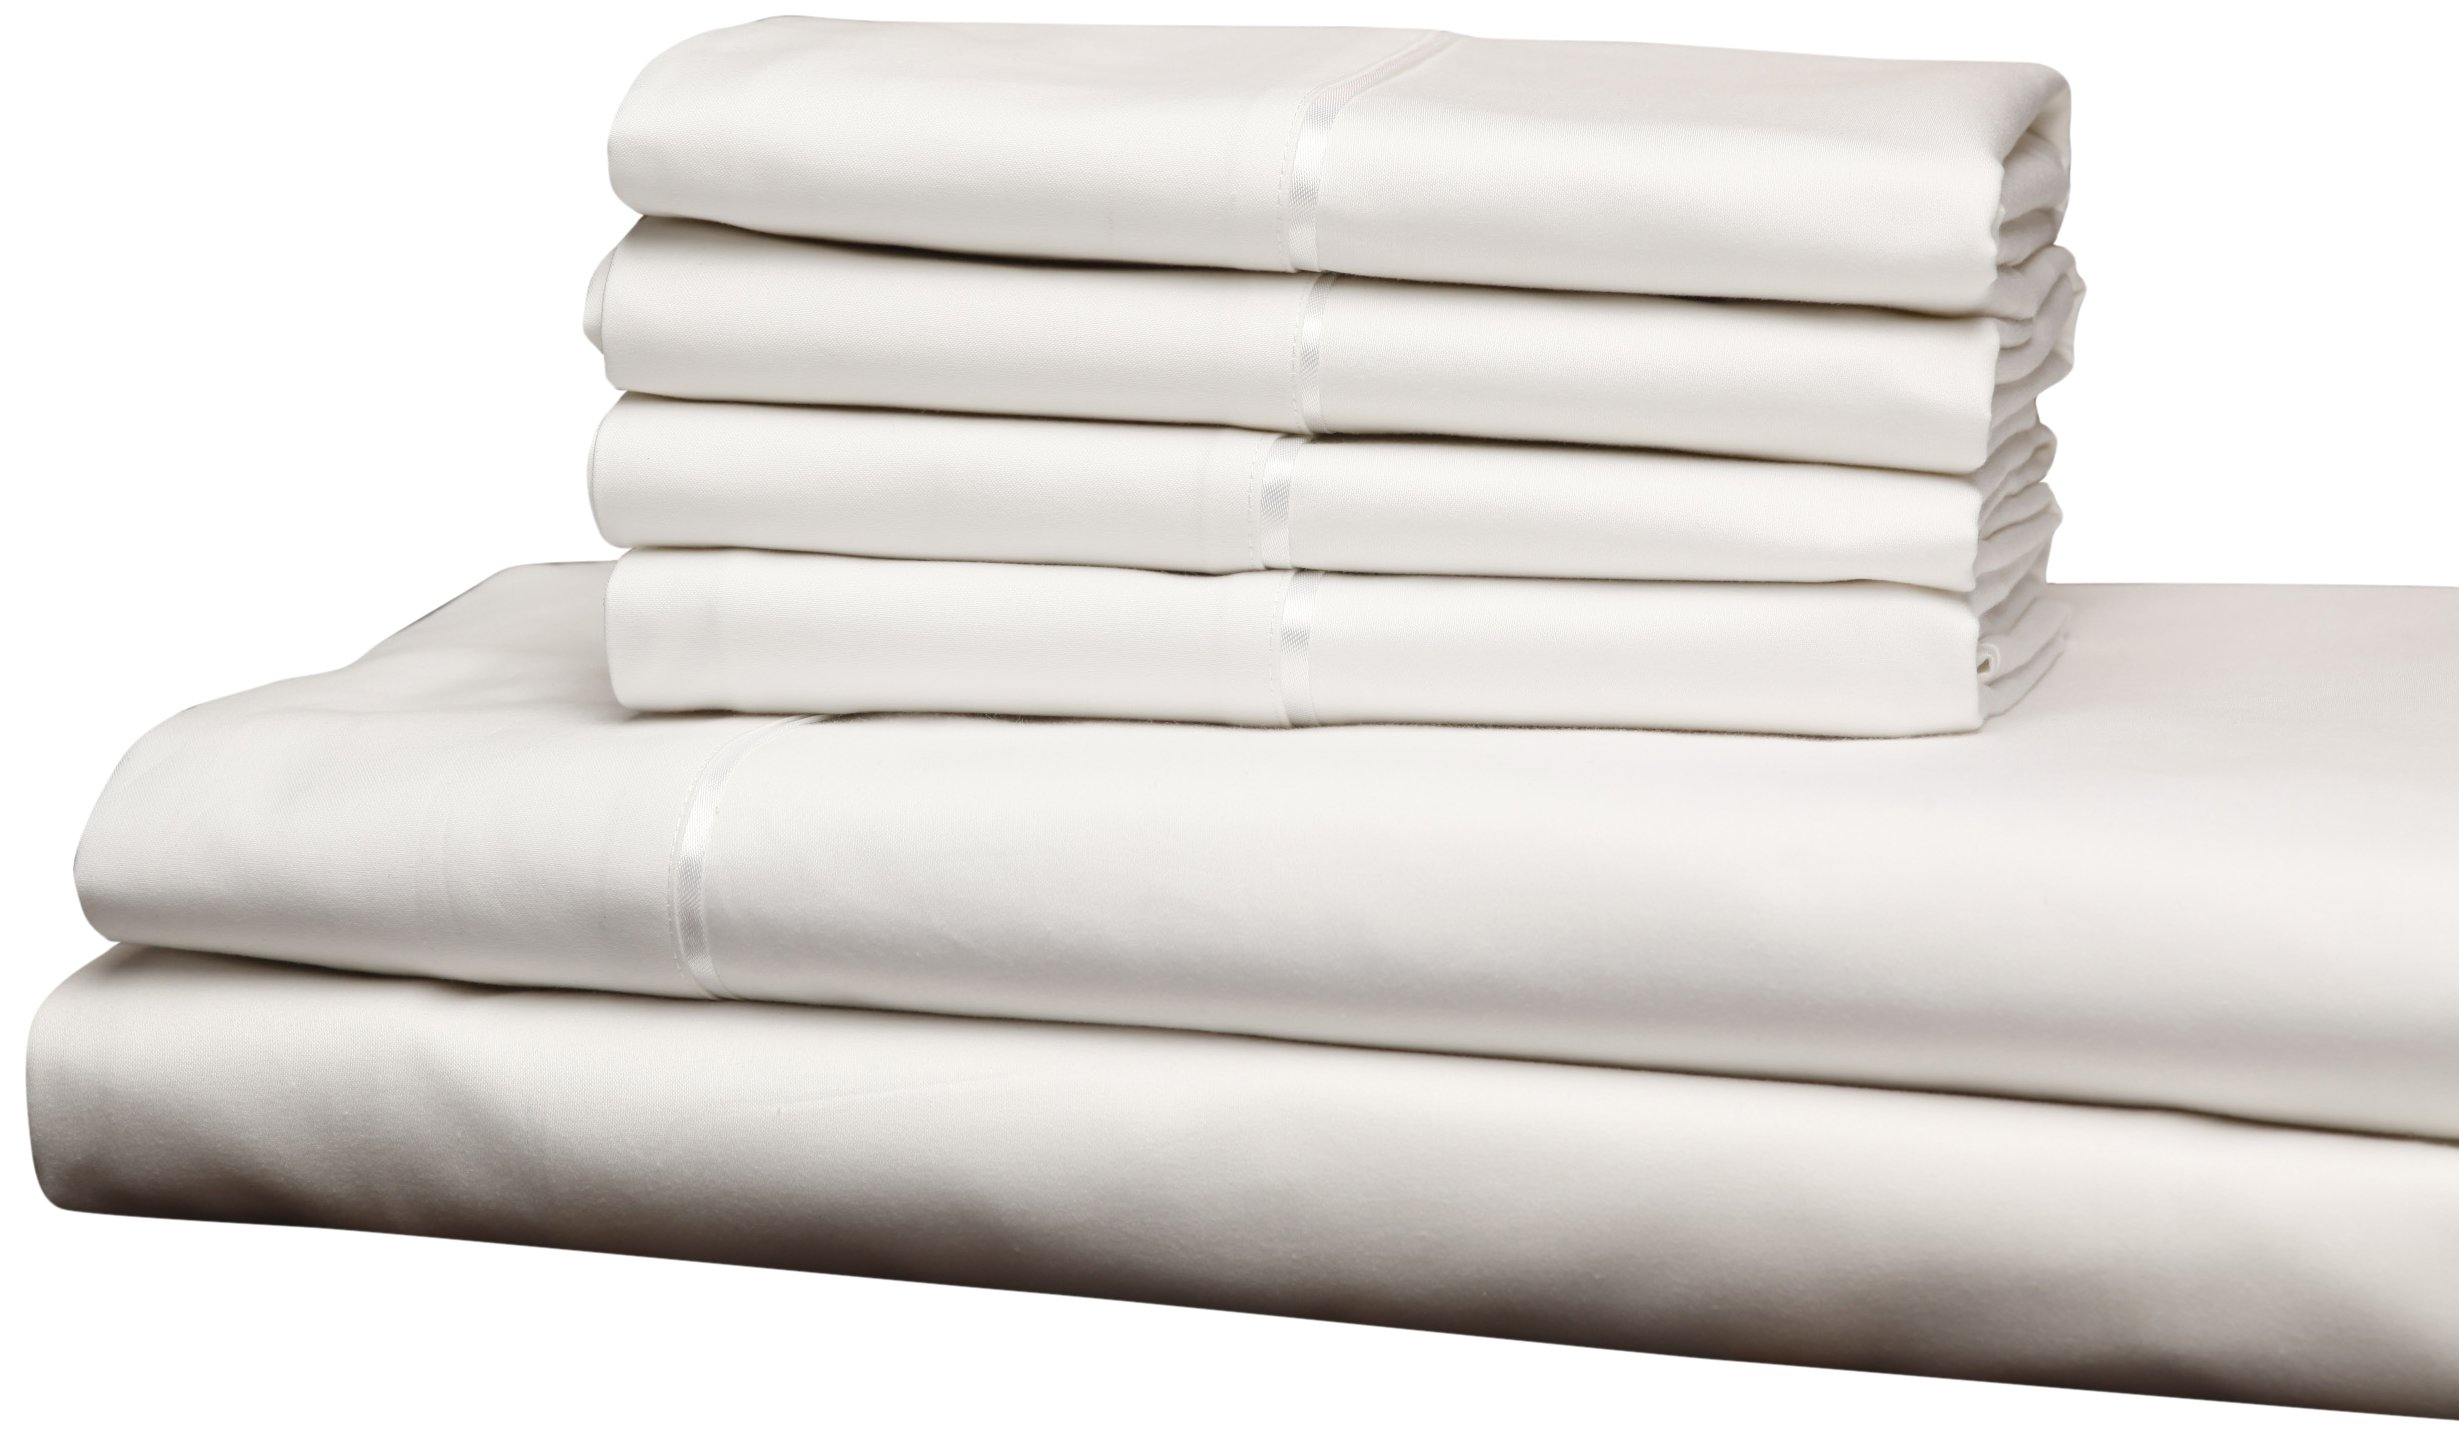 Fashion Bed Group QH0432 White 4-Piece T750 Home Collection Bed Sheet Set with 750-Thread Count Fabric, Split King